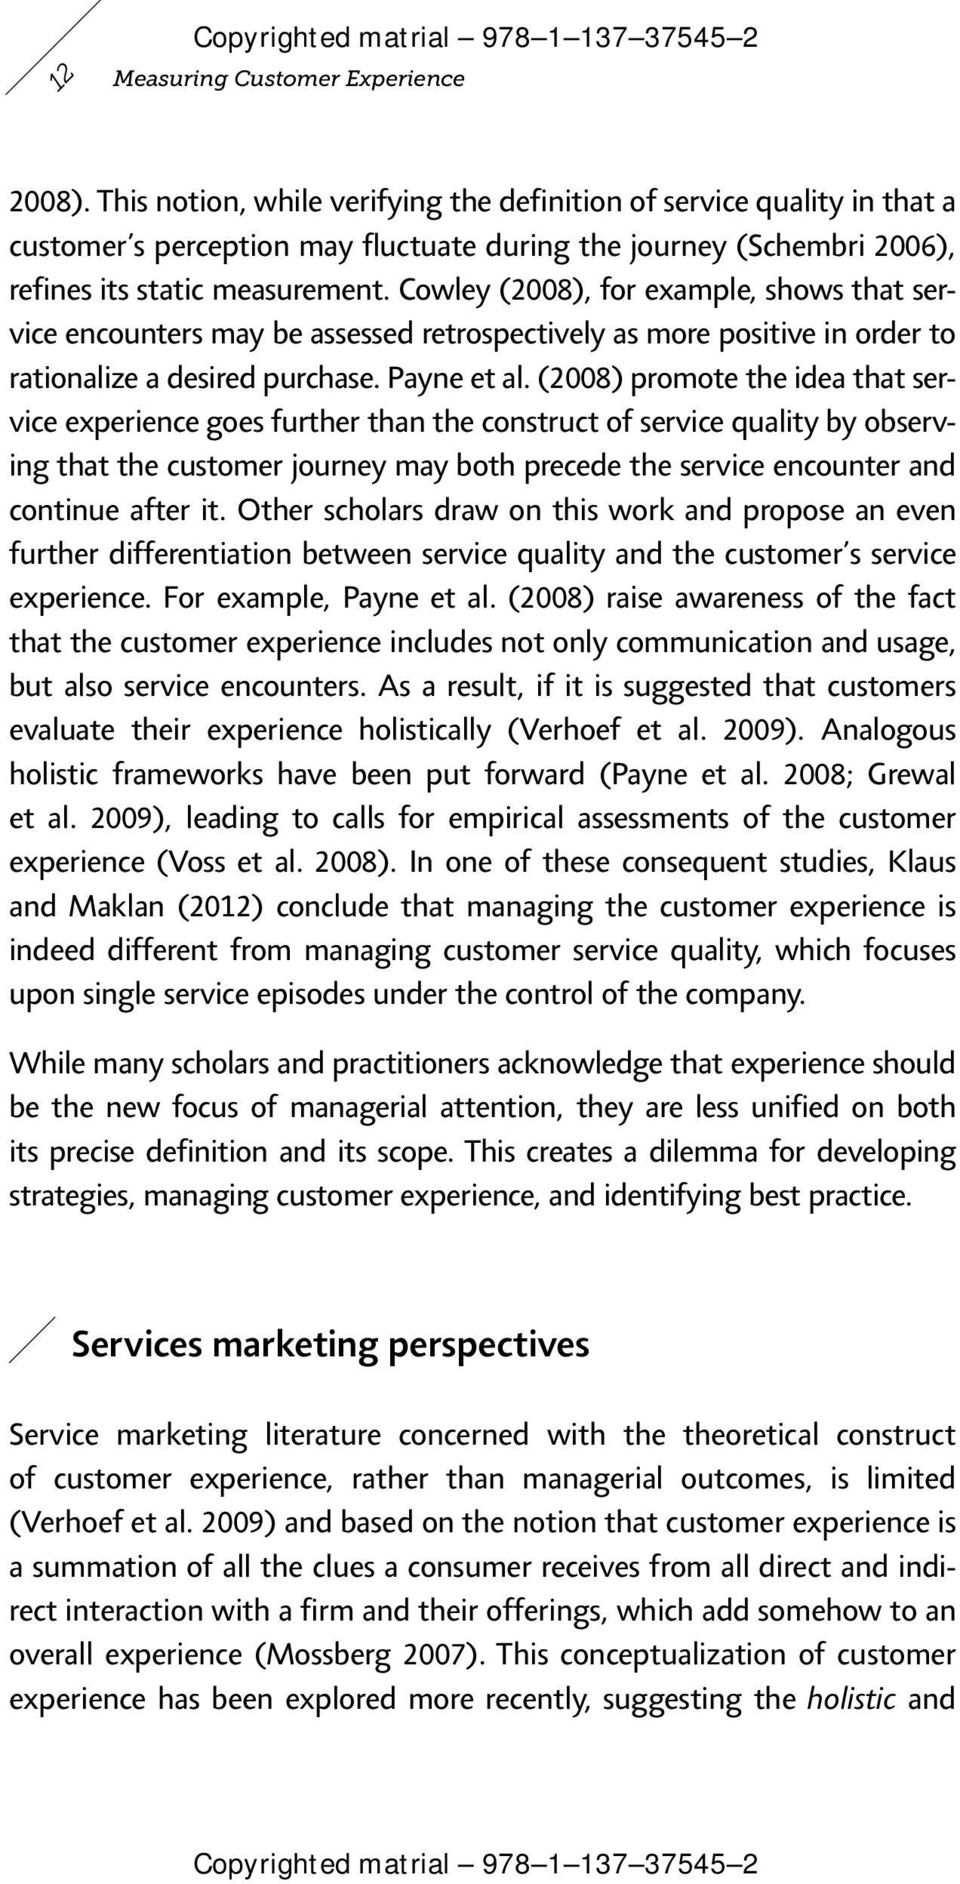 Cowley (2008), for example, shows that service encounters may be assessed retrospectively as more positive in order to rationalize a desired purchase. Payne et al.